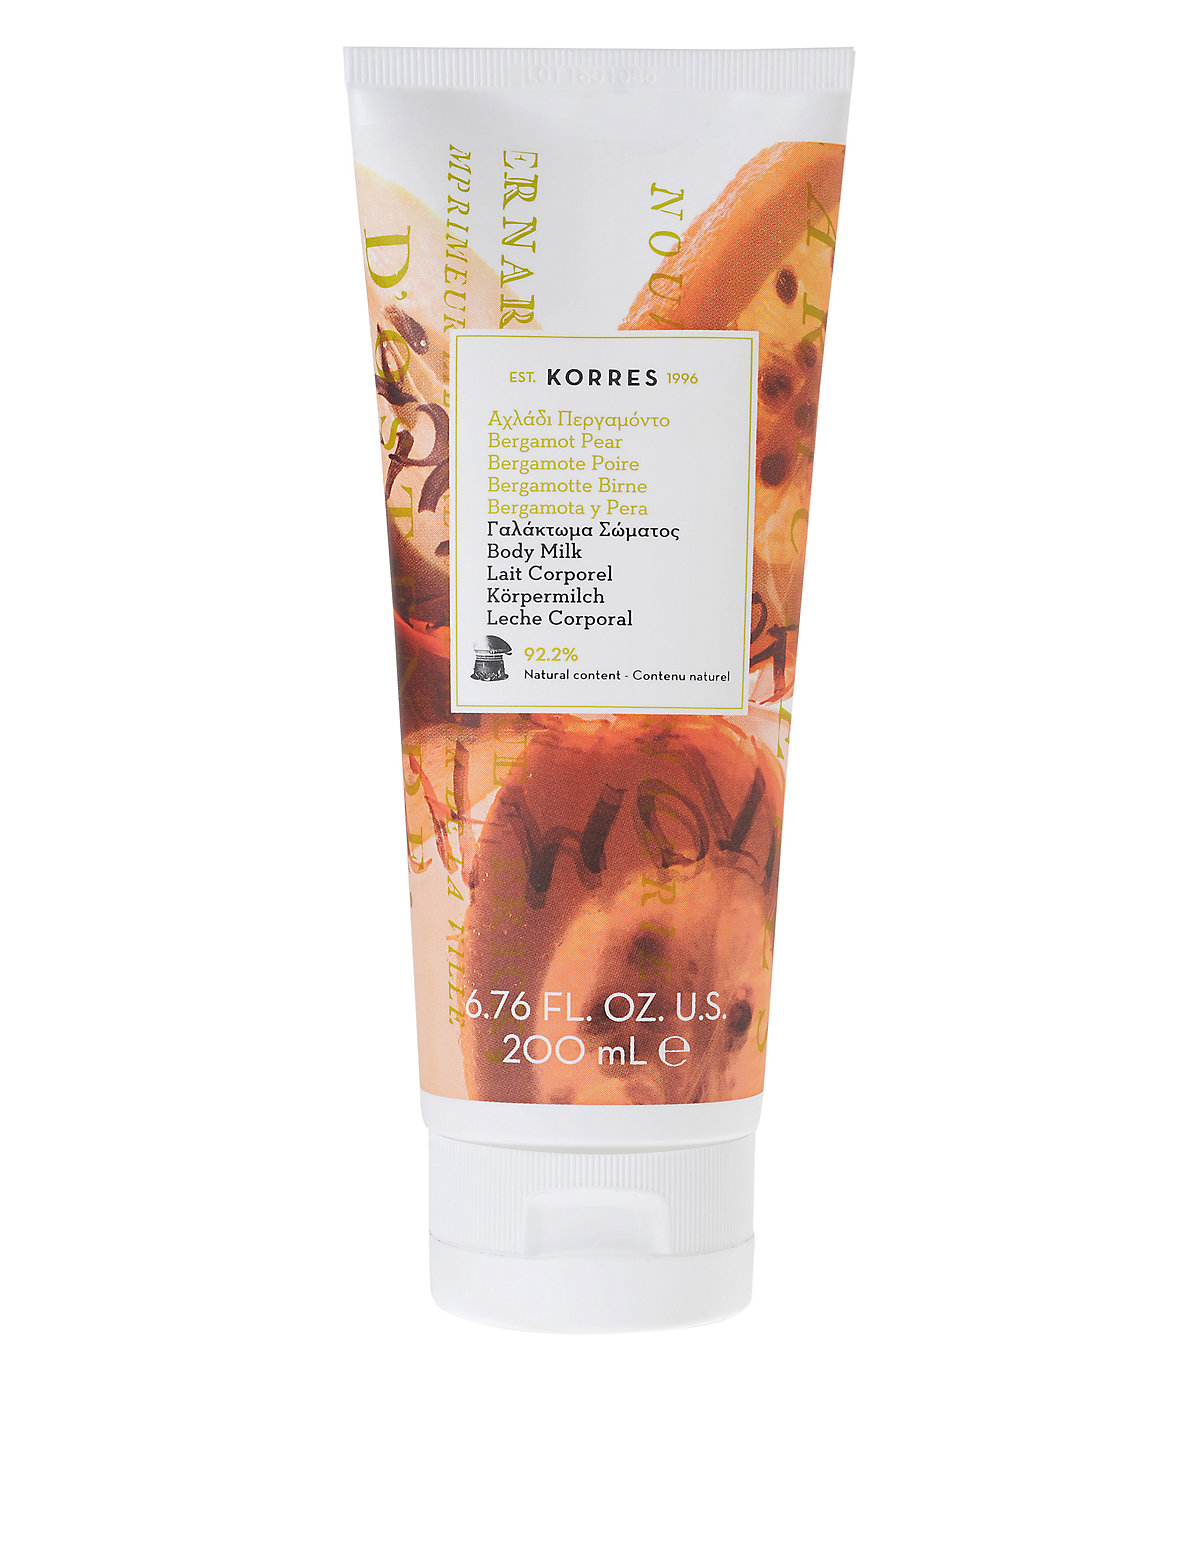 Korres Bergamot Pear Body Milk 200ml